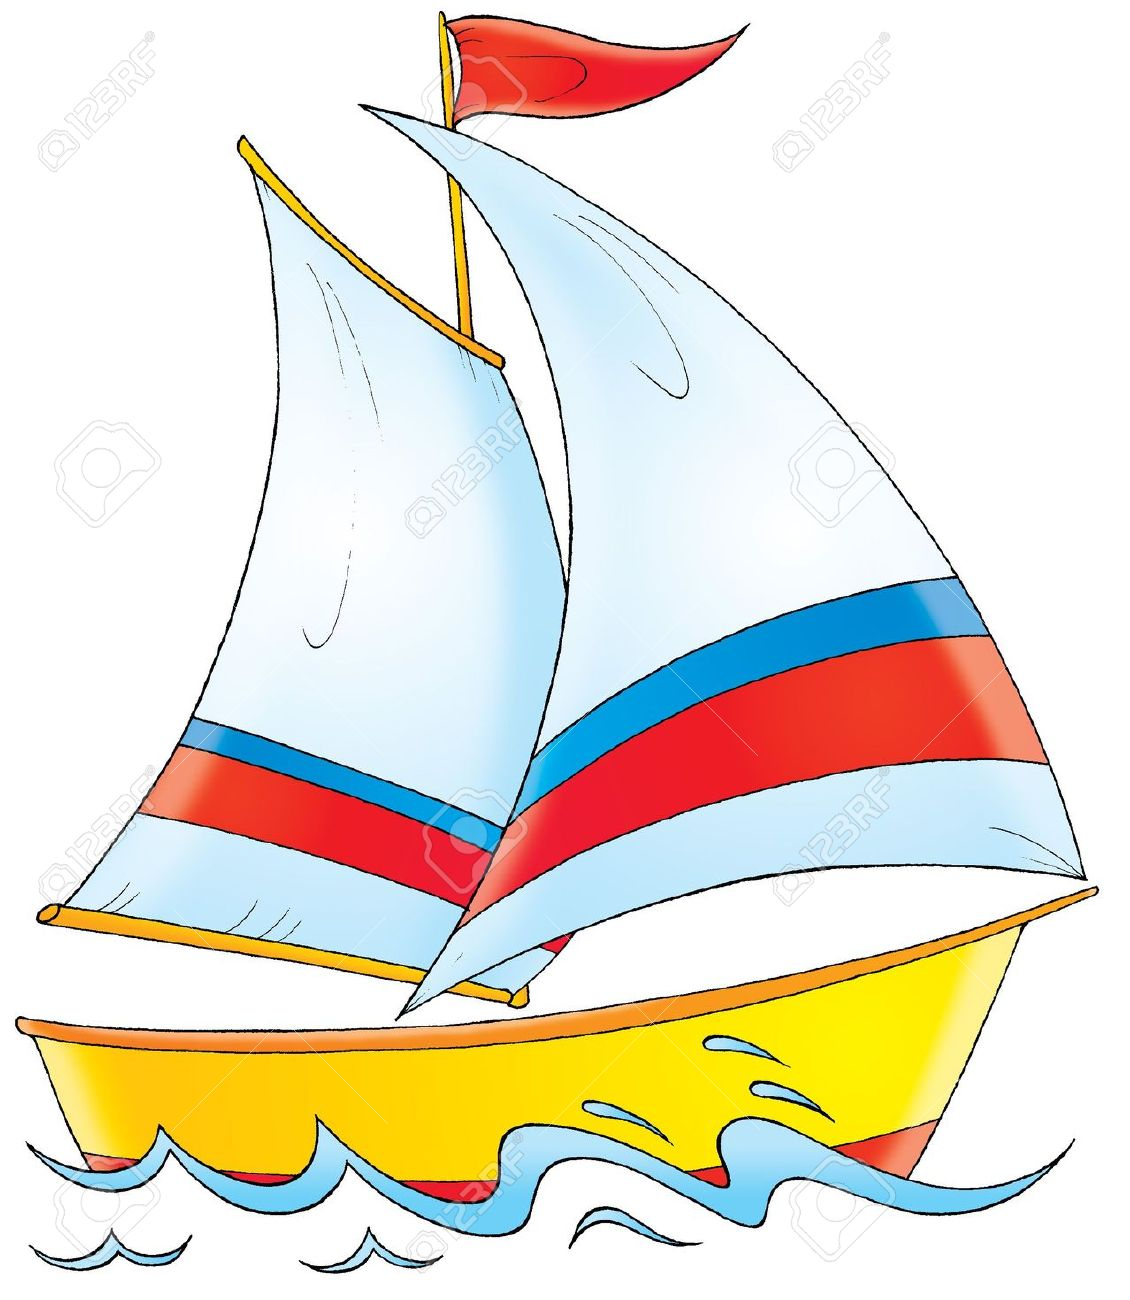 Yacht clipart - Clipground